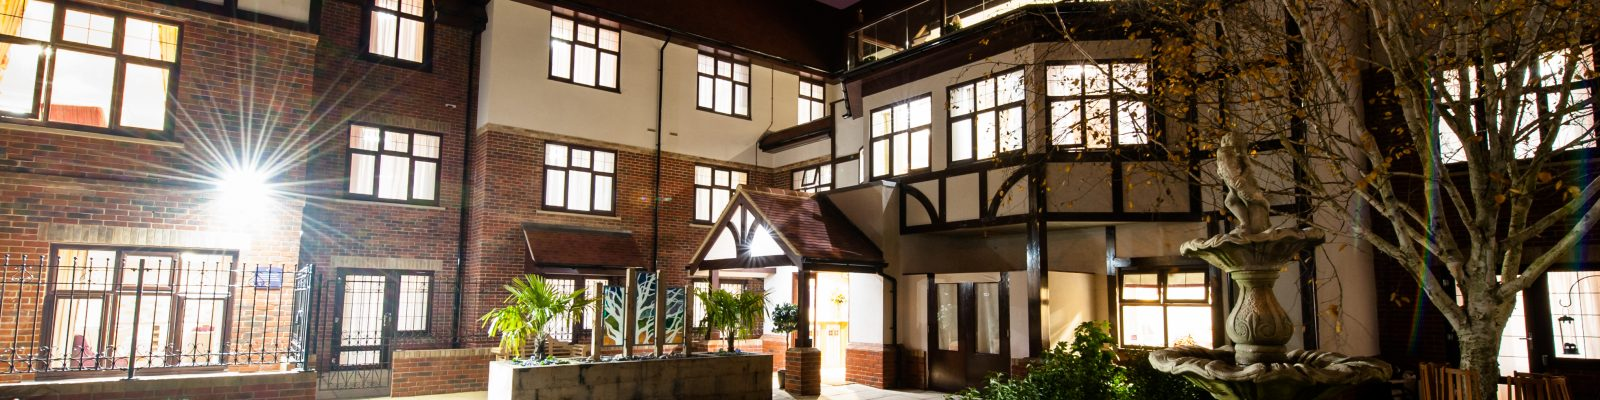 Maycroft Manor Care Home